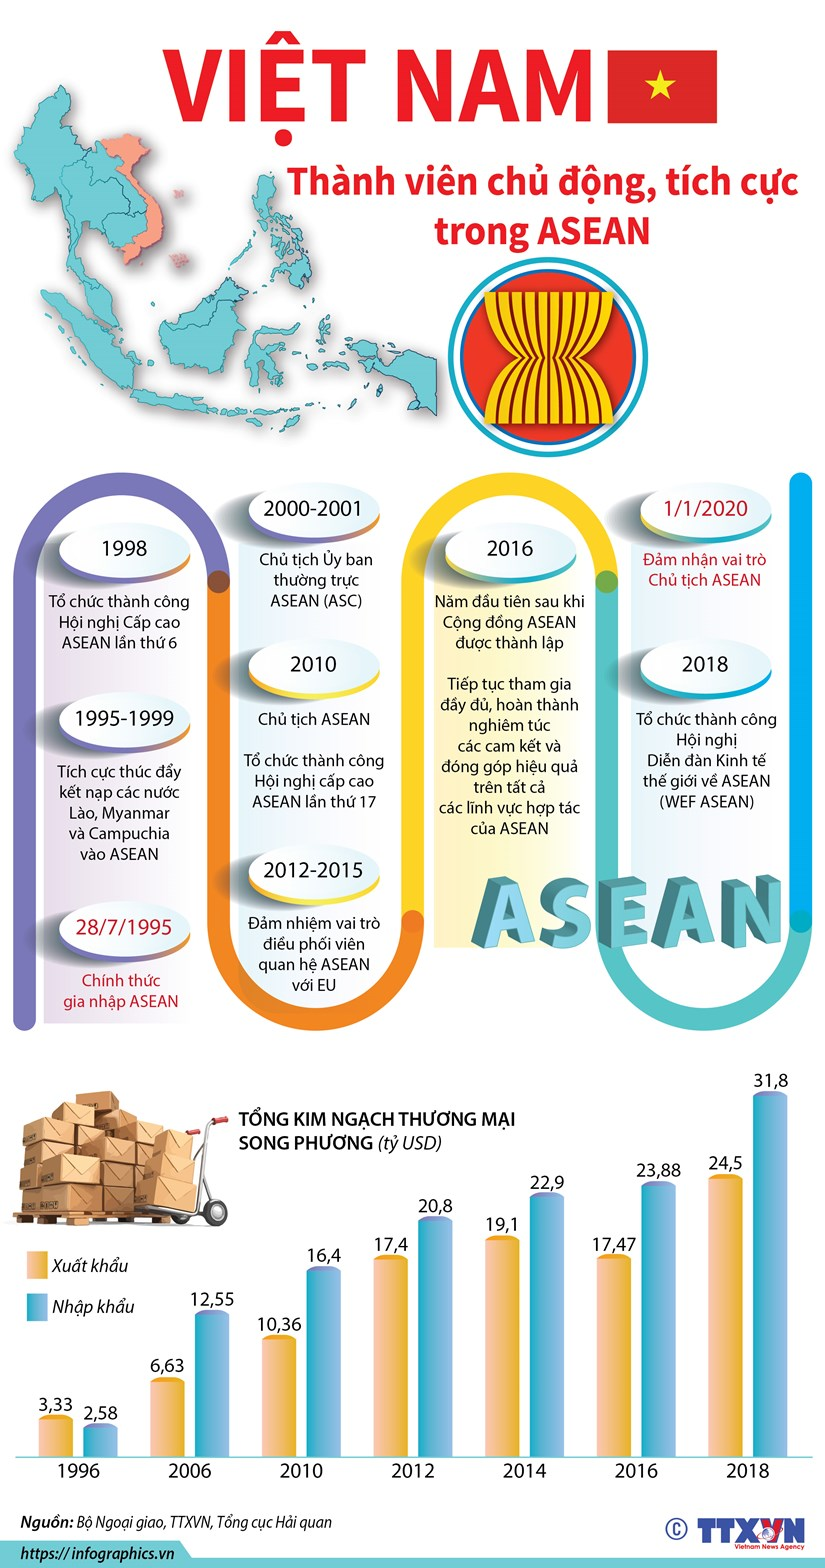 [Infographics] Viet Nam - thanh vien chu dong, tich cuc trong ASEAN hinh anh 1